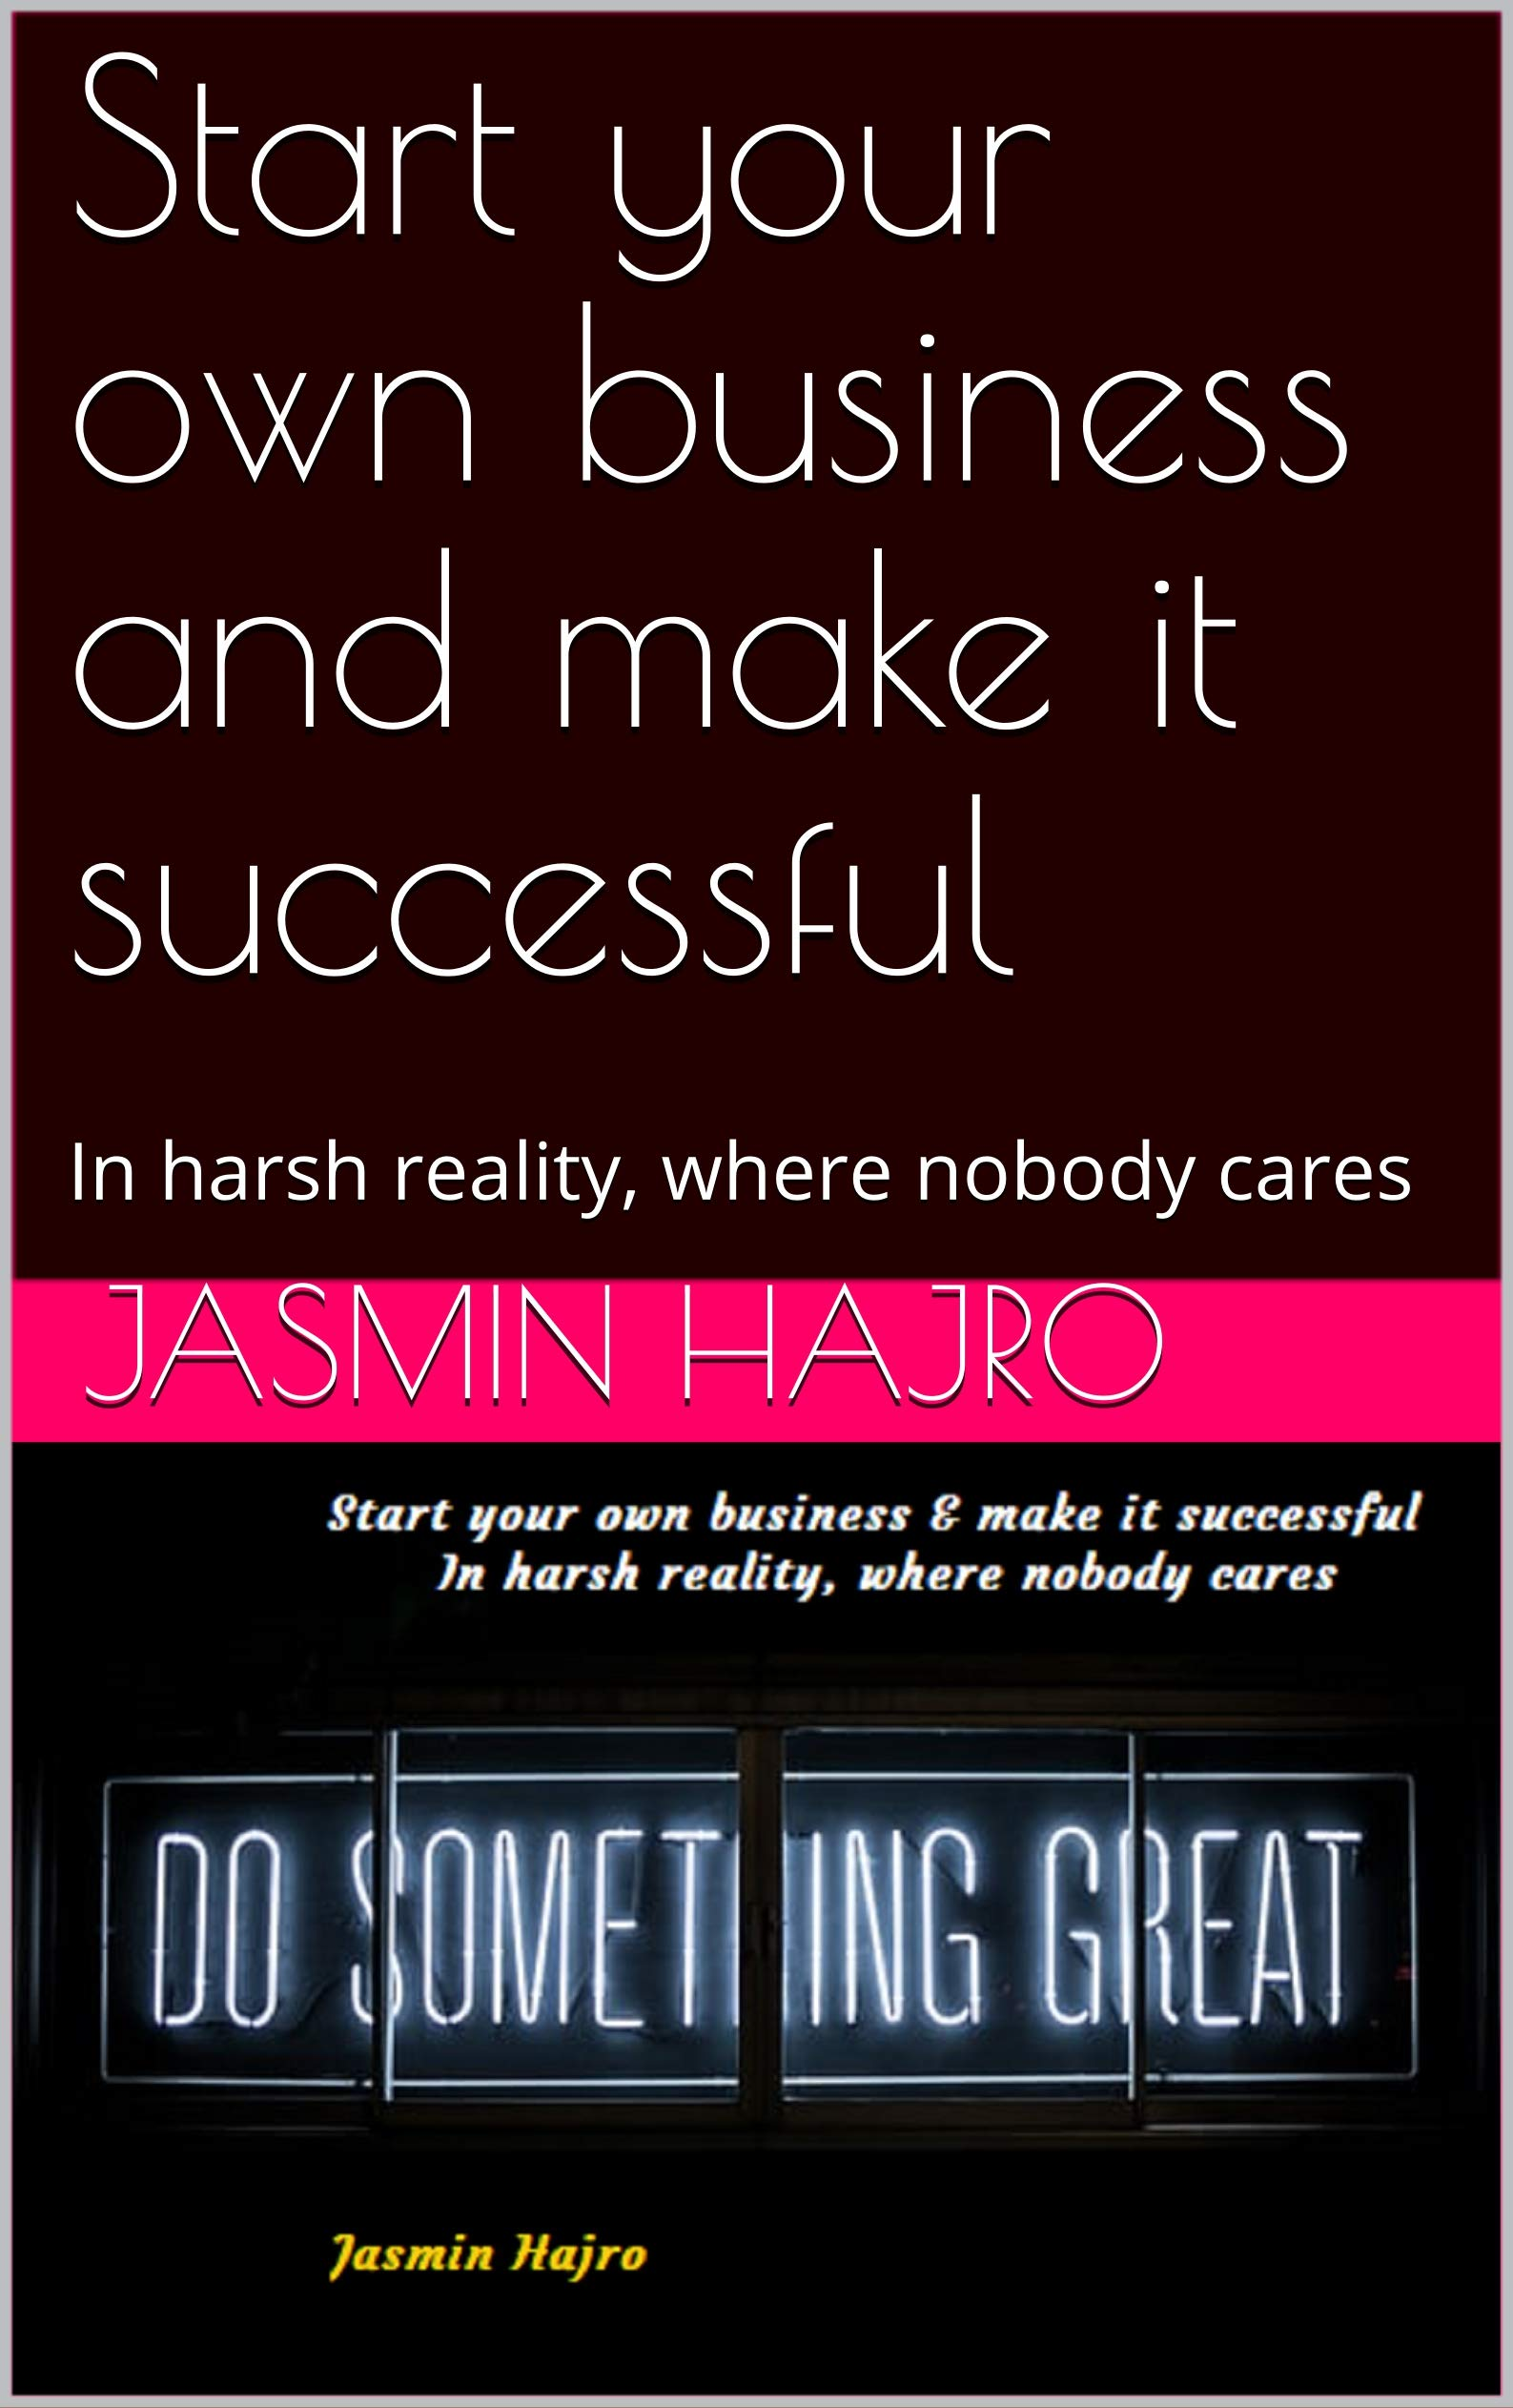 Start your own business and make it successful: In harsh reality, where nobody cares